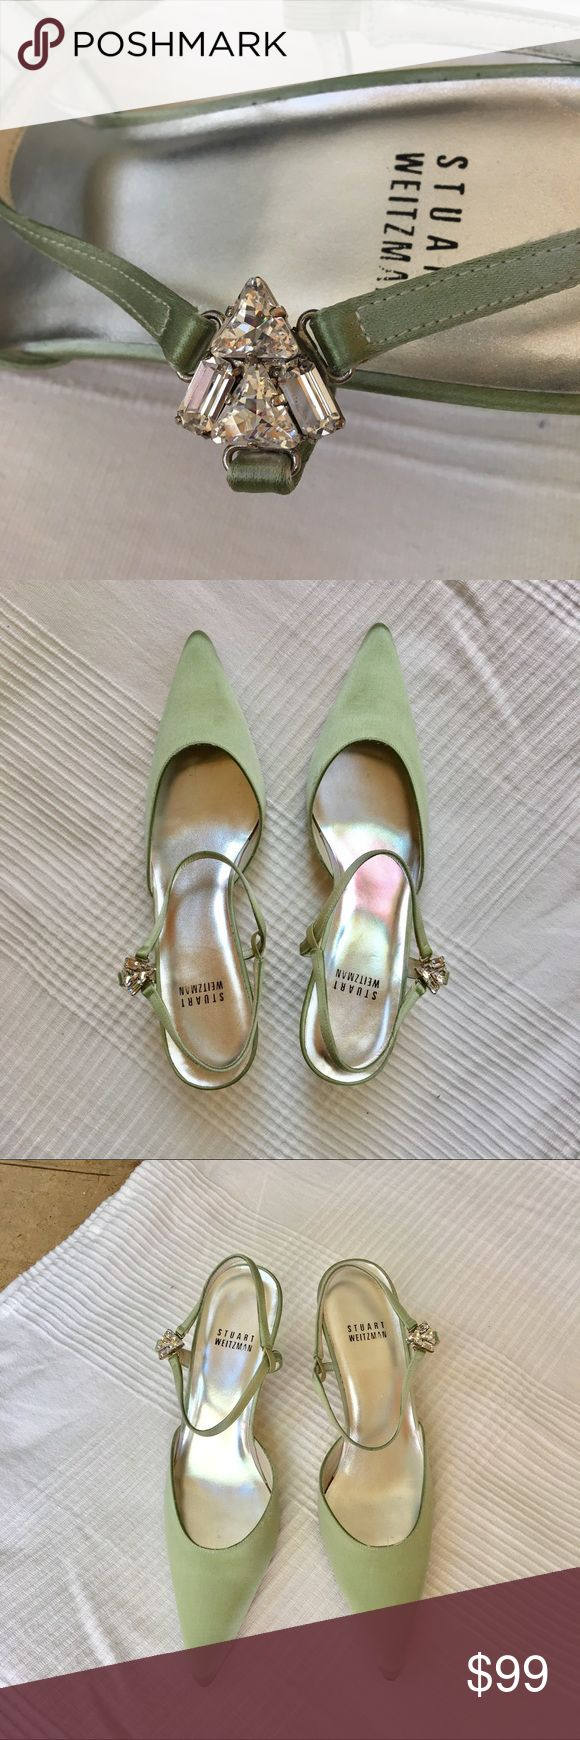 "Stuart Weitzman Satin Slingback Sandals NIOB ""TrianGlow"" Swarovski adorned Satin kitten heels from Stuart Weitzman. Pale green (celadon, celery color) neutral shade. Never worn. Come with original box which is kind of beat up 😬 but shoes are perfect. * Satin Upper with stunning Swarovski® ornamented post sling-back strap * Leather Sole * Approximate 2"" Covered Heel * Made in Spain. Like what you see? Make an offer using the button below. No trades please. Stuart Weitzman Shoes Heels"